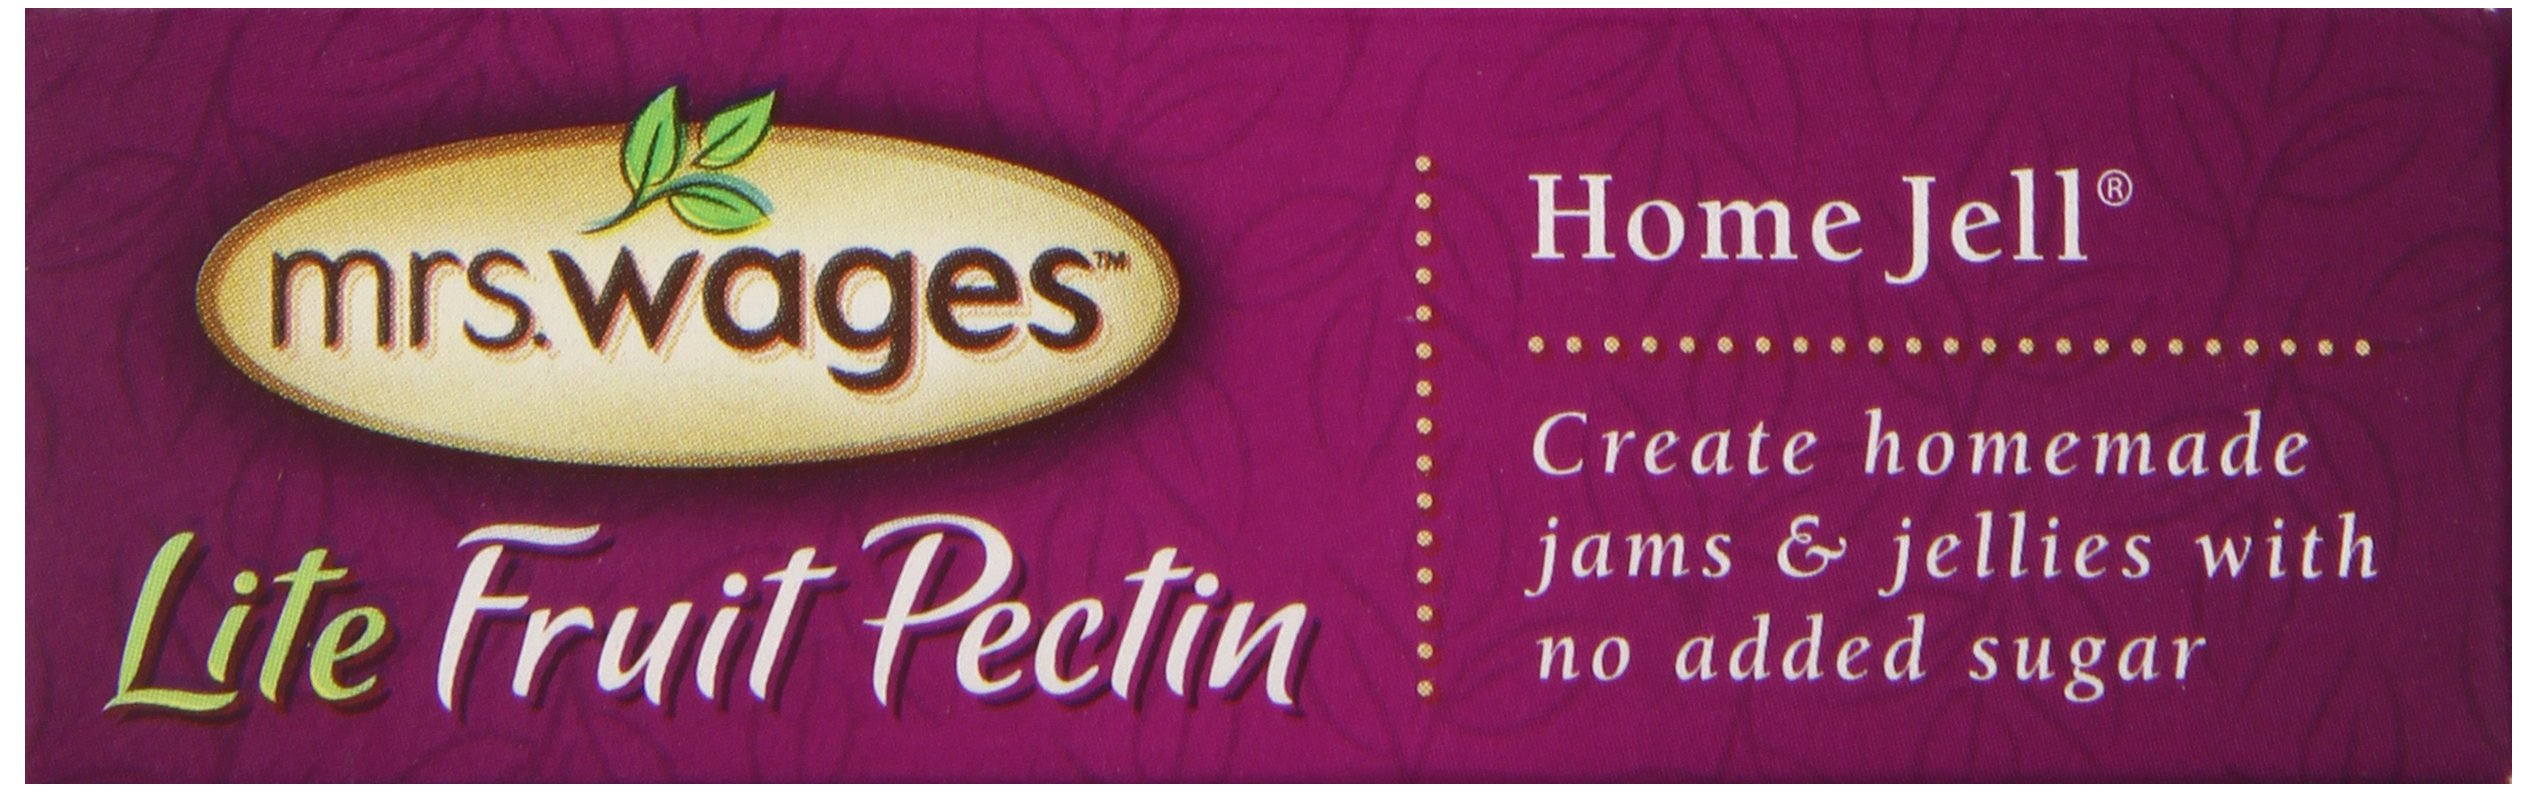 Mrs. Wages Lite Home Jell Fruit Pectin, 1.75-Ounce Pouches (Pack of 12) by Mrs. Wages (Image #5)